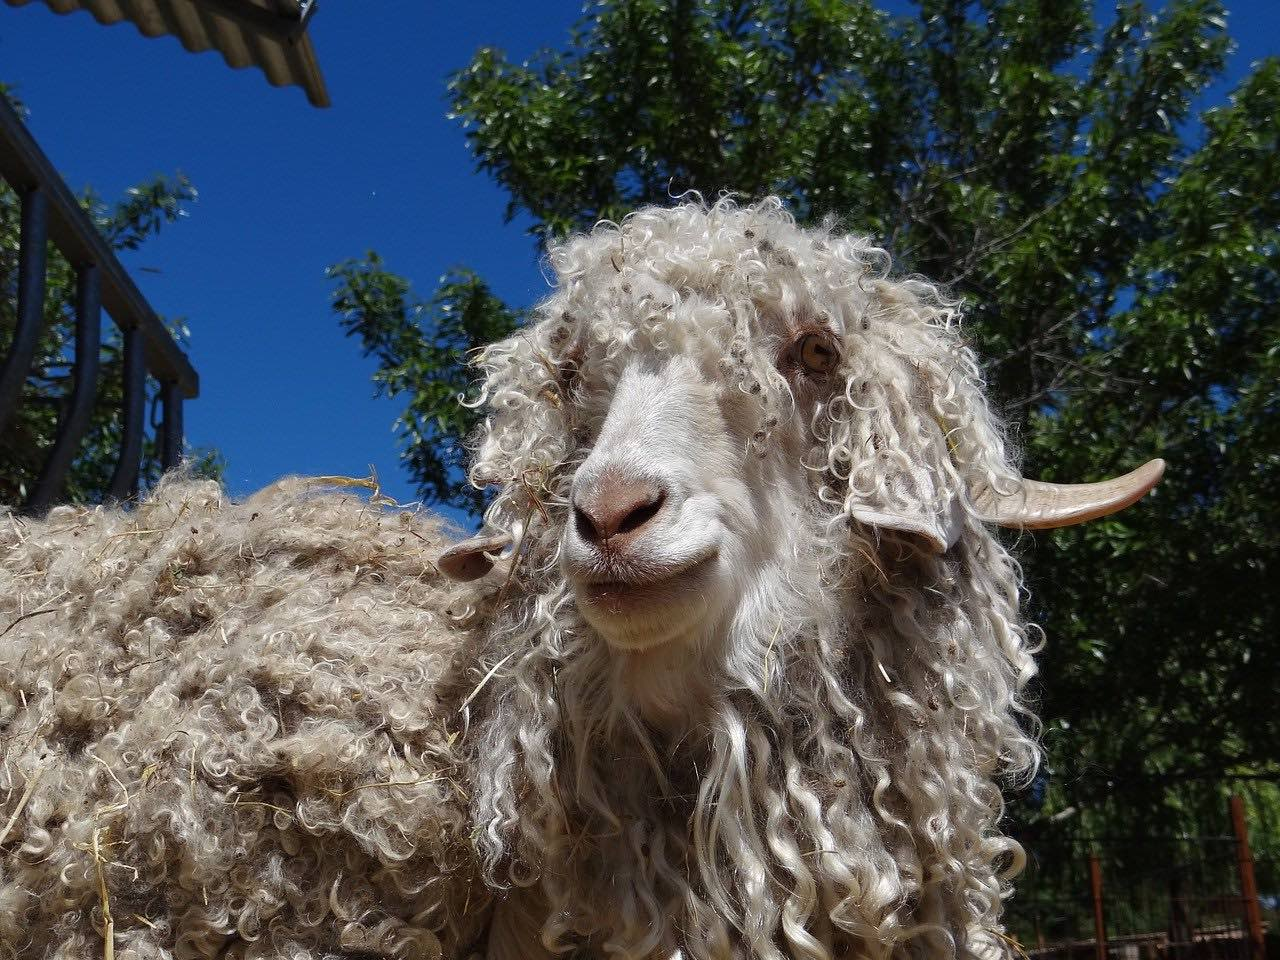 Mohair mattresses and an angora goat